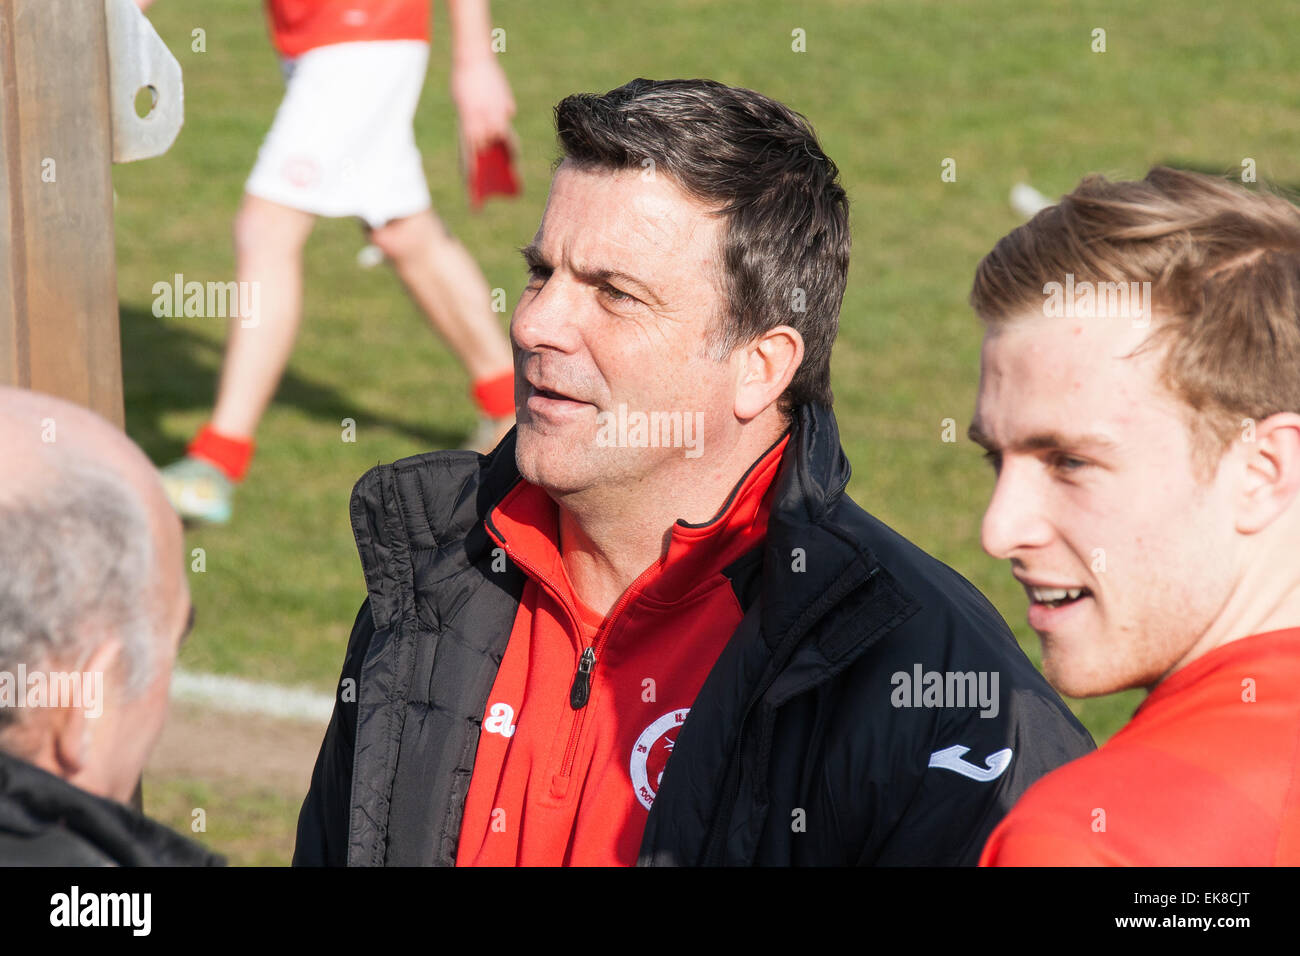 Kevin Wilson, a former professional footballer, manager of Ilkeston Football Club - Stock Image